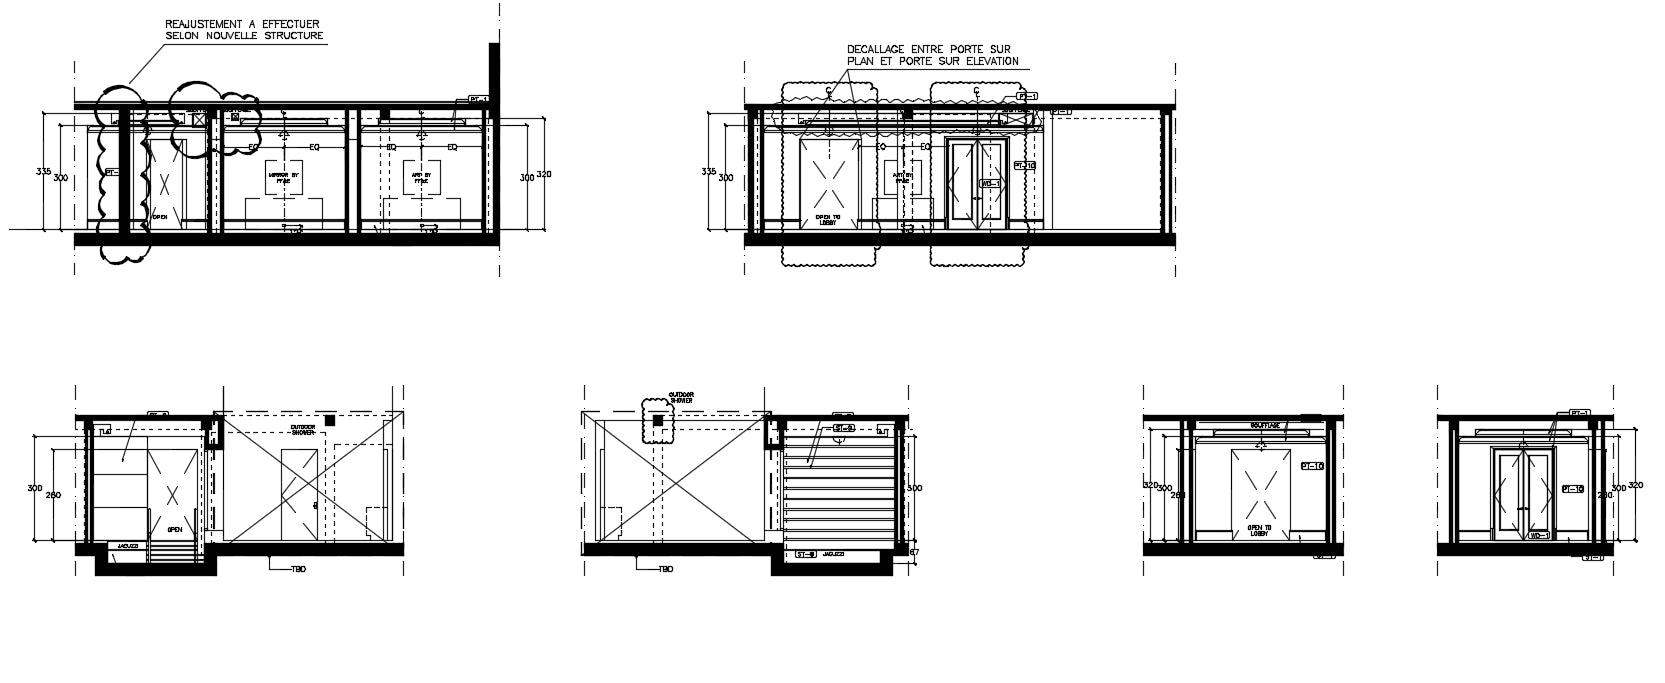 House drawing room interiors detail and design in cad